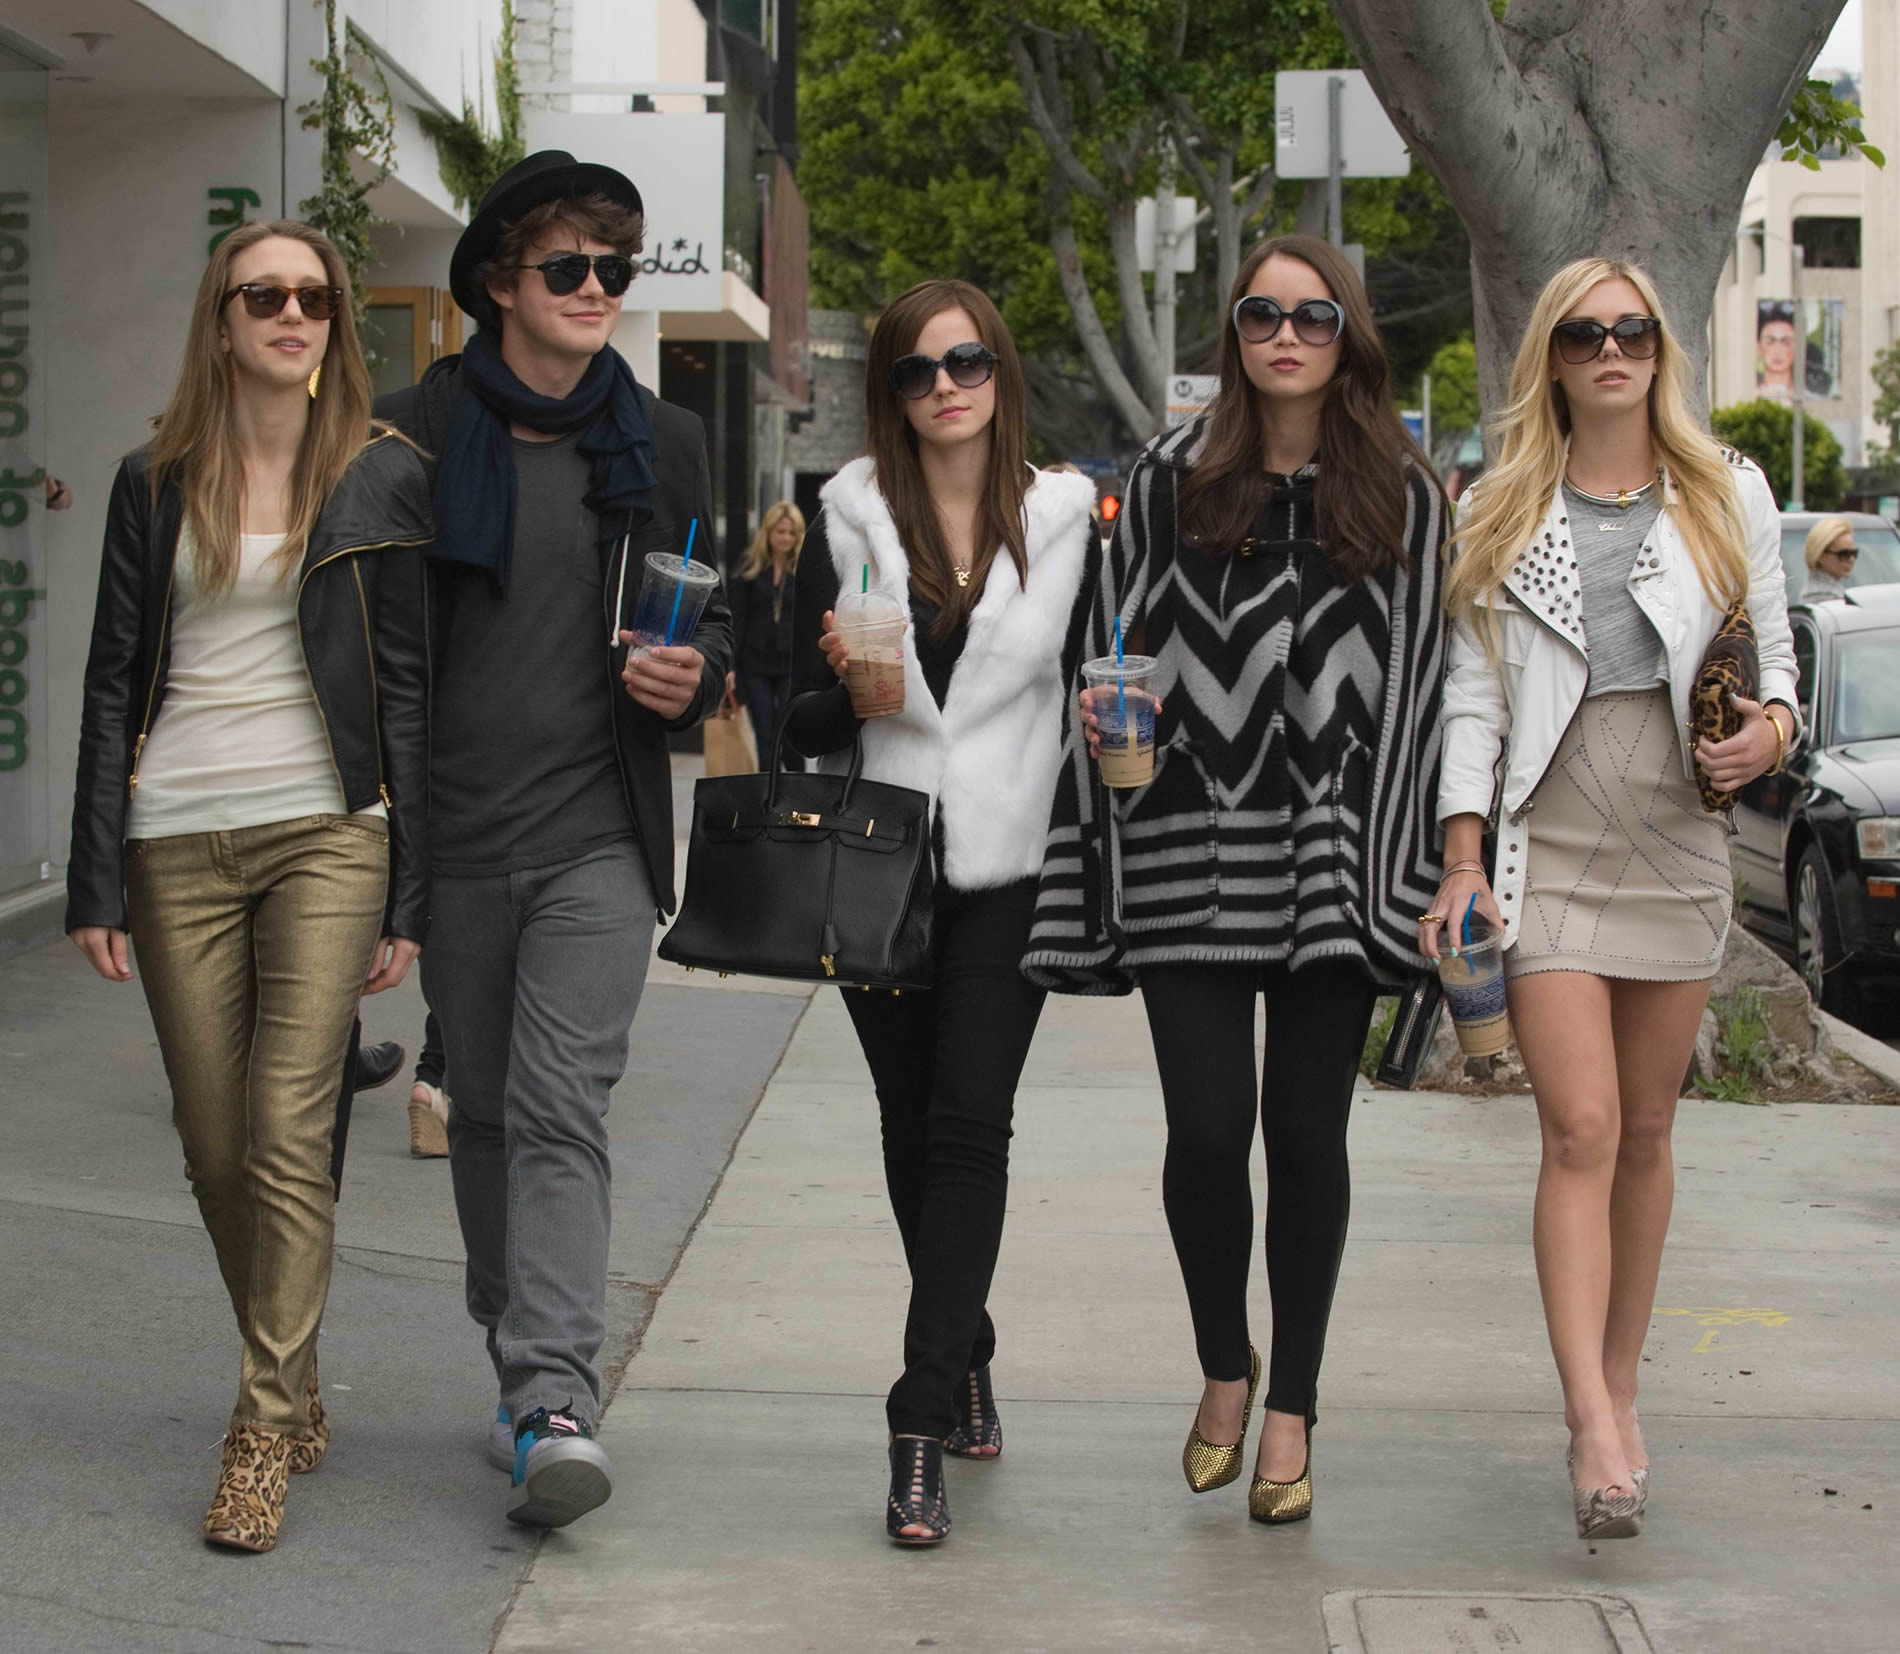 ids from the bling ring movie.